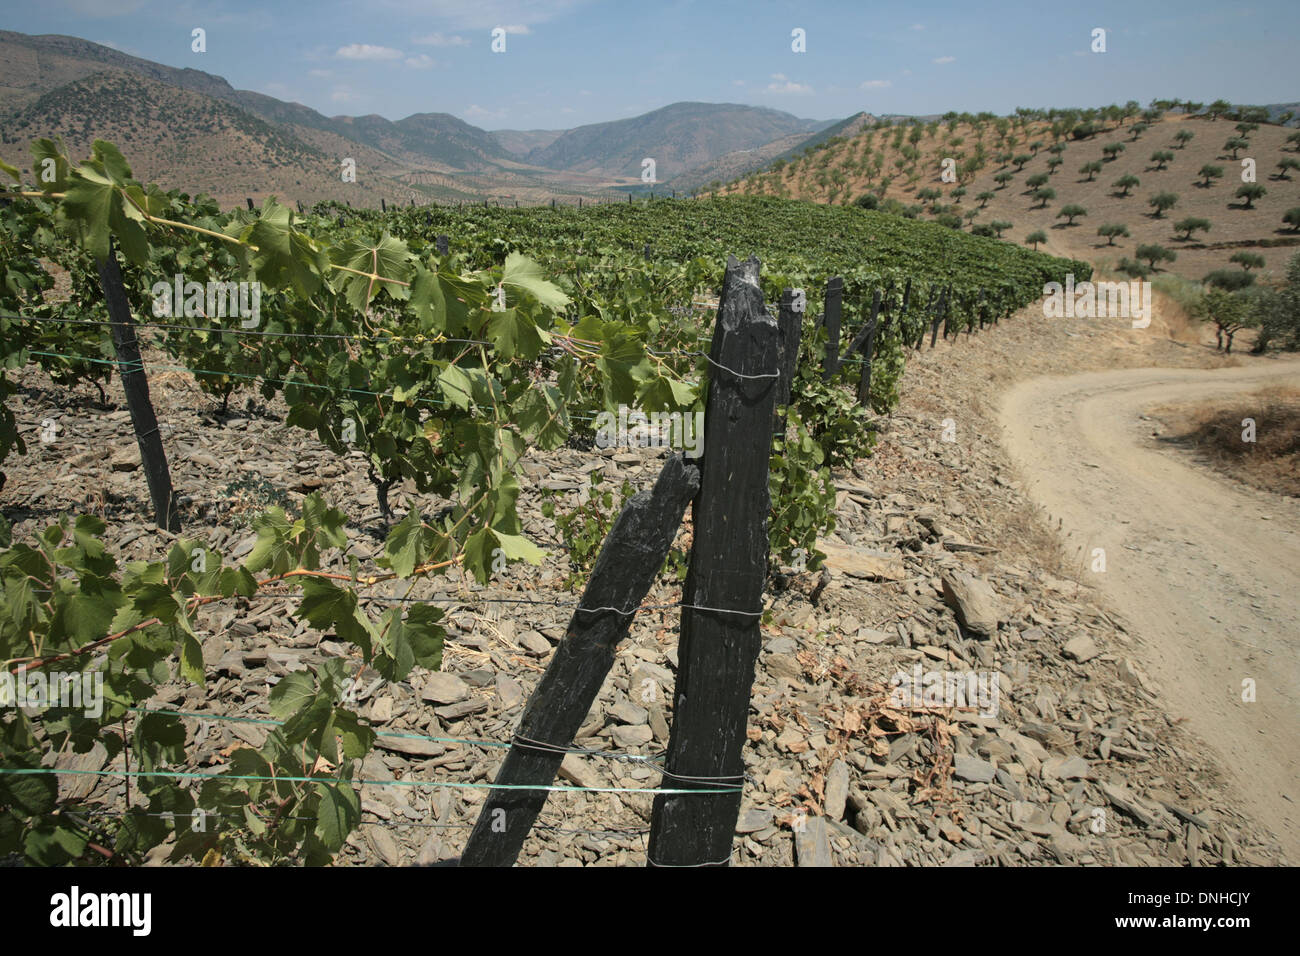 GRAPEVINES OF THE UPPER DOURO, THE TERROIR AND STAKES OF SLATE, PORTUGAL - Stock Image